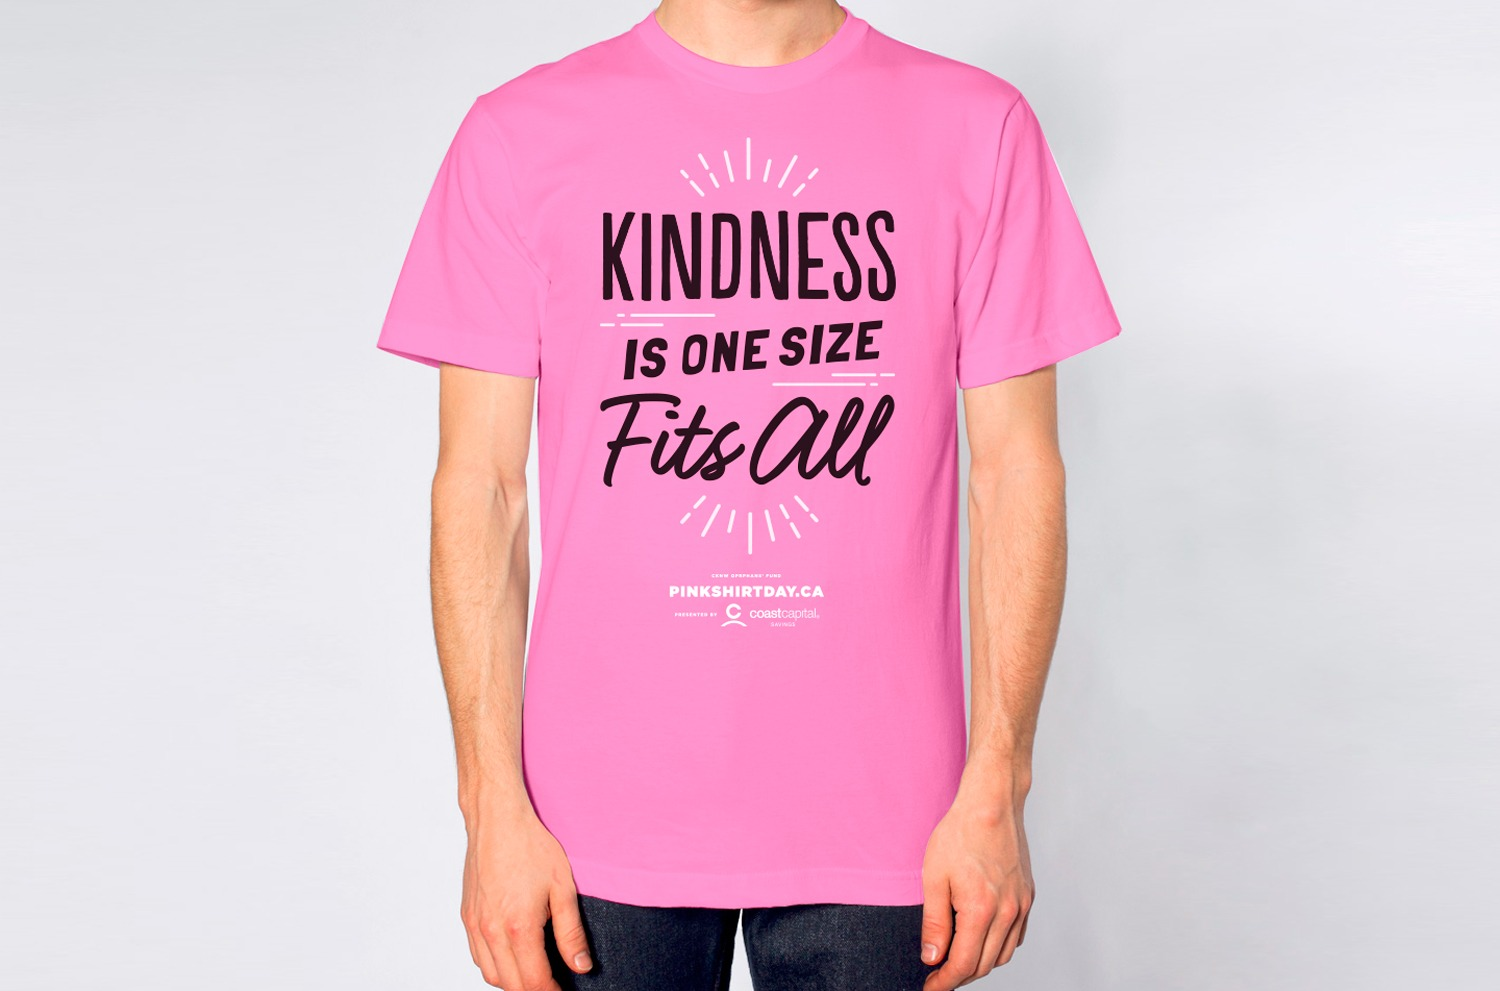 Pink Shirt Day - Kindness is one size fits all. - Rethink Canada